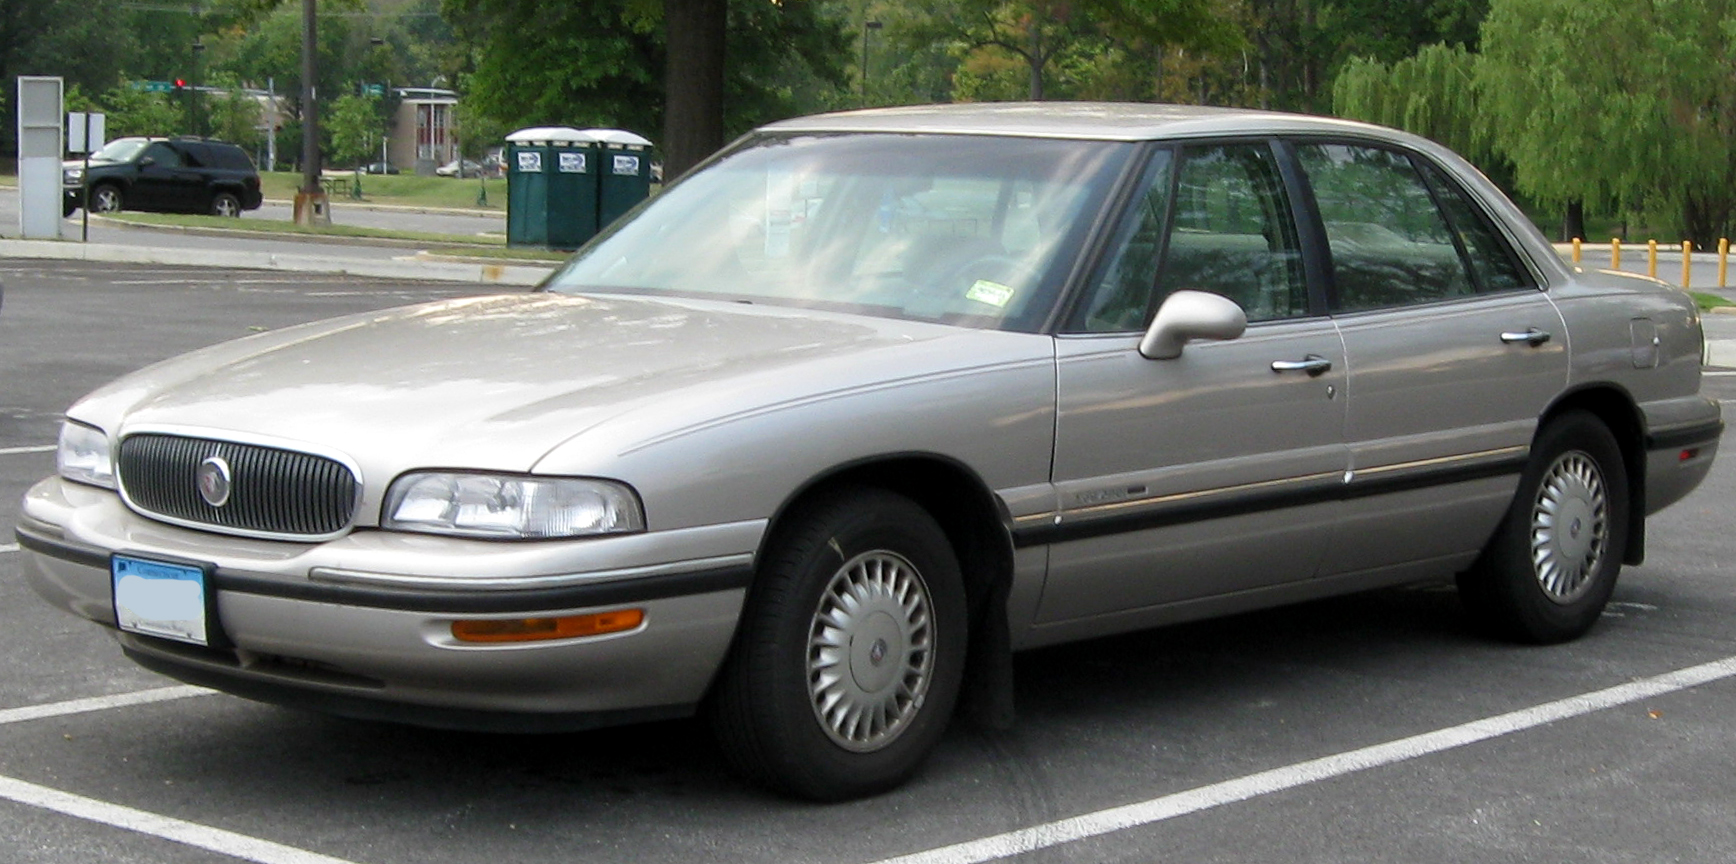 hight resolution of 1999 buick lesabre custom photo 1